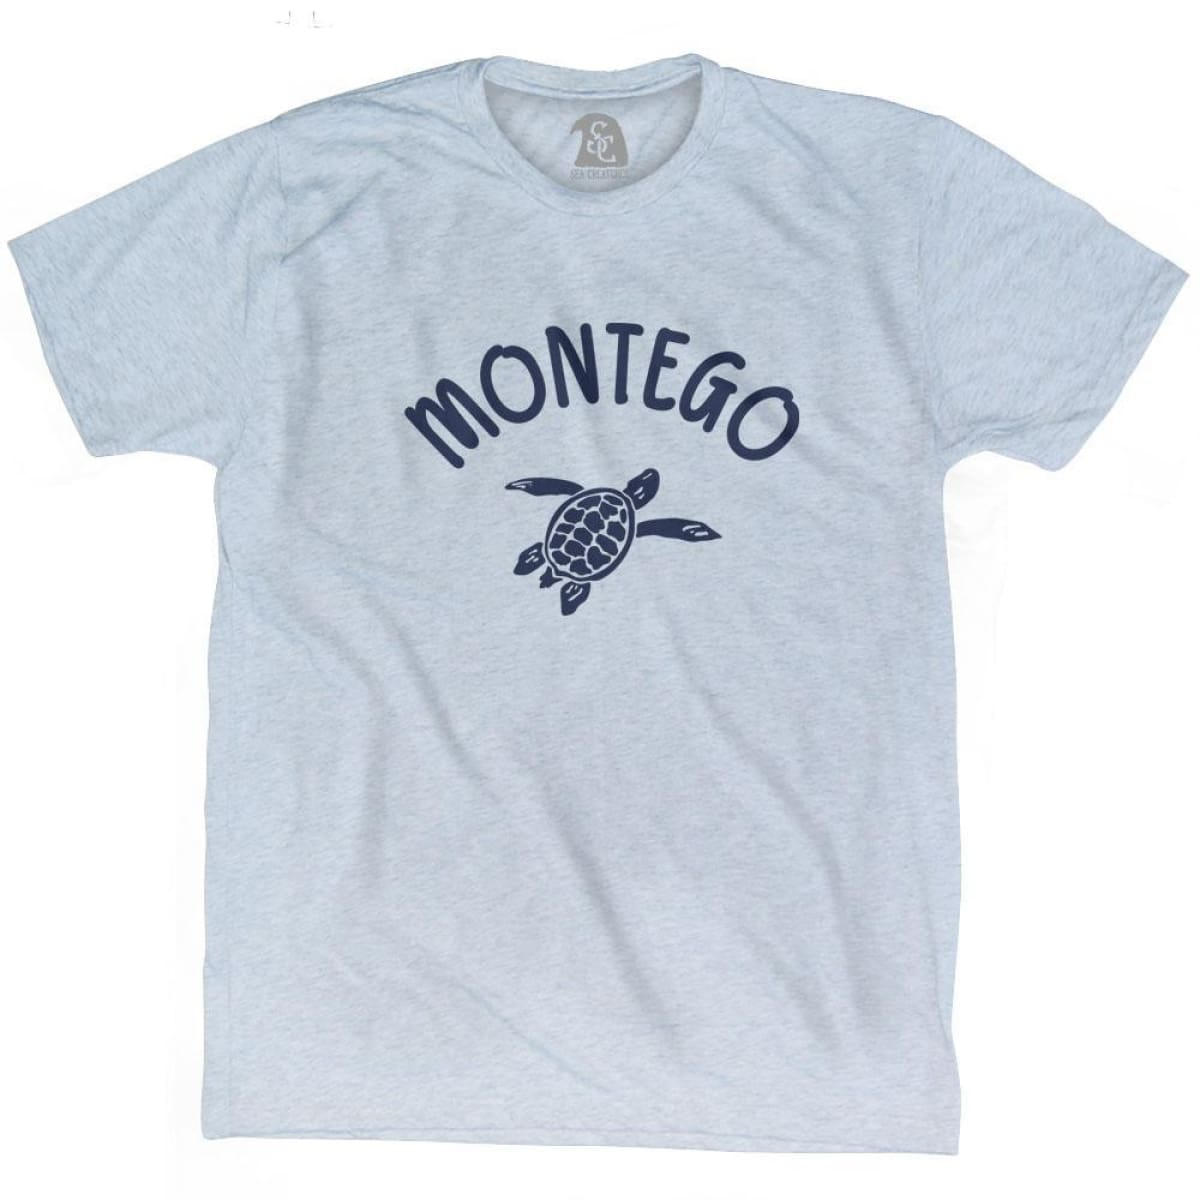 Montego Beach Sea Turtle Adult Tri-Blend T-shirt - Athletic White / Adult Small - Turtle T-shirts